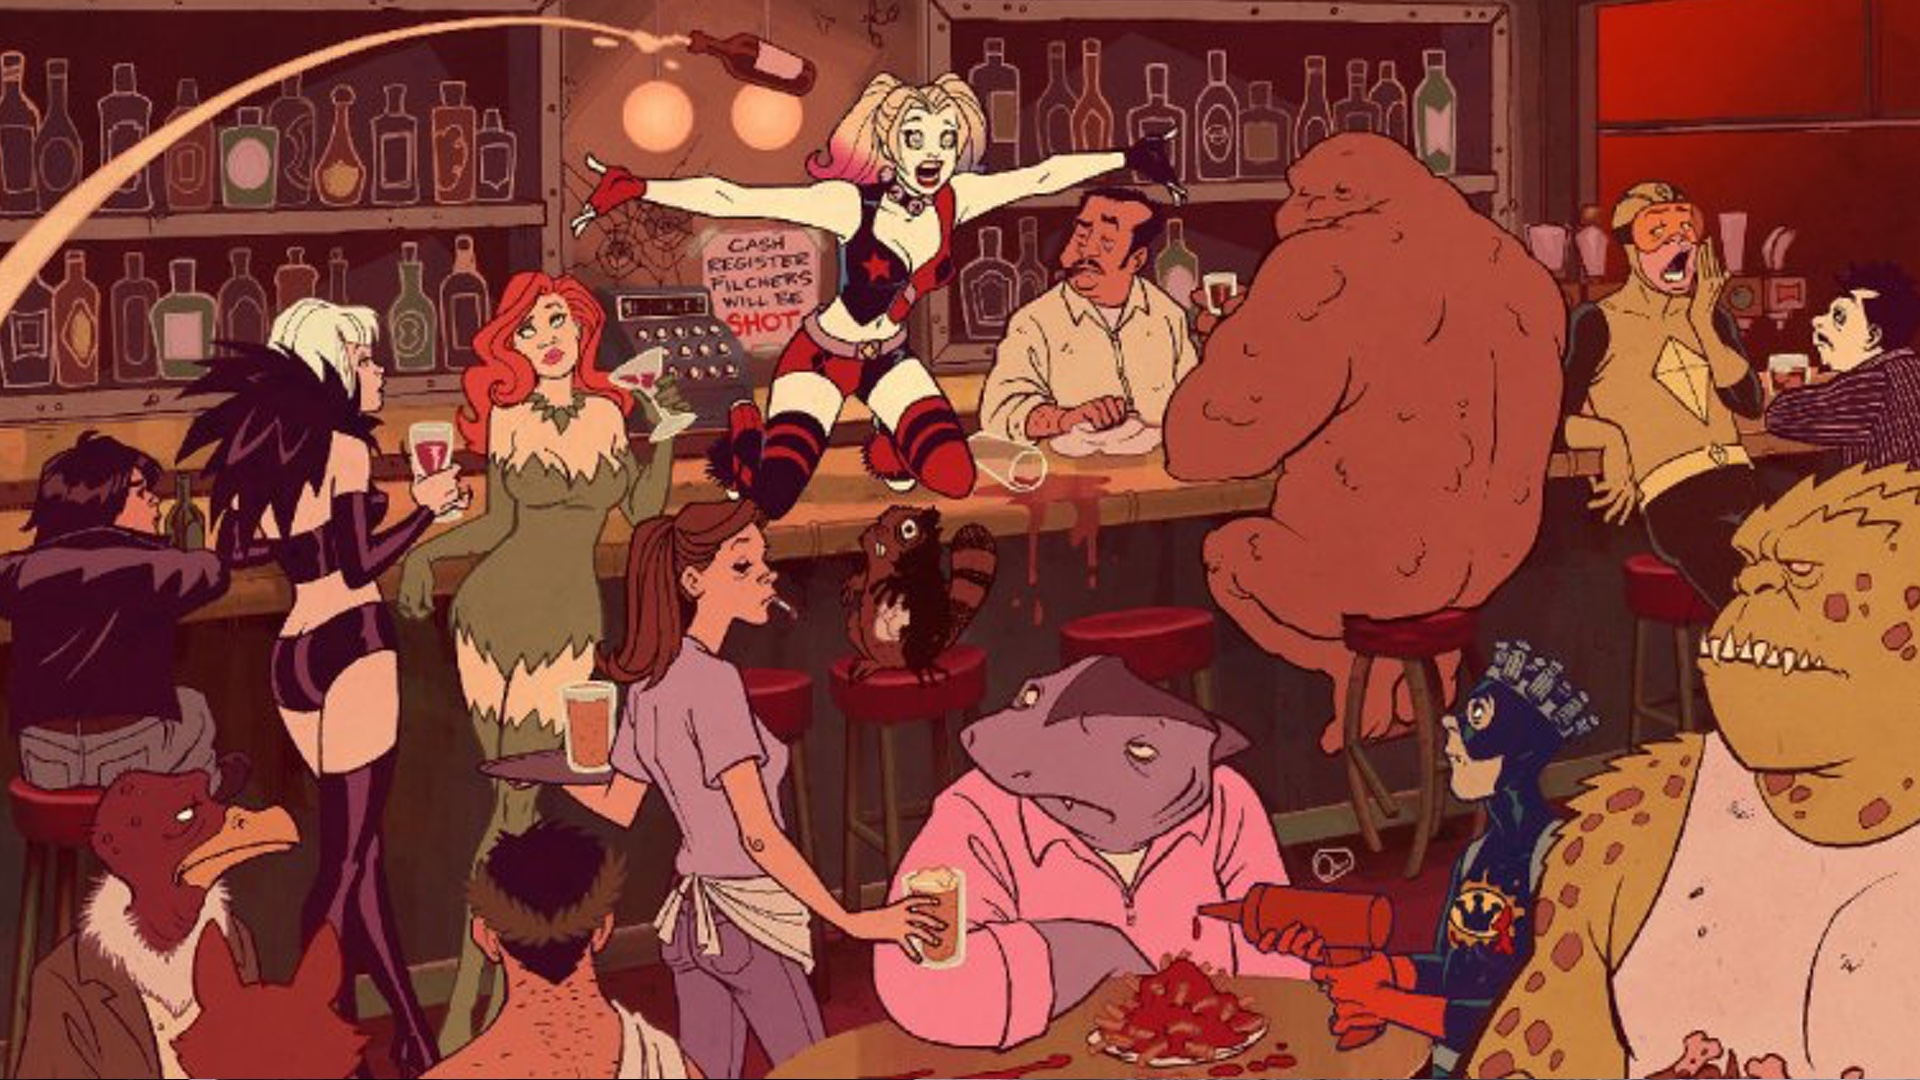 harley-quinn-is-getting-her-own-adult-animated-action-comedy-series-social.jpg